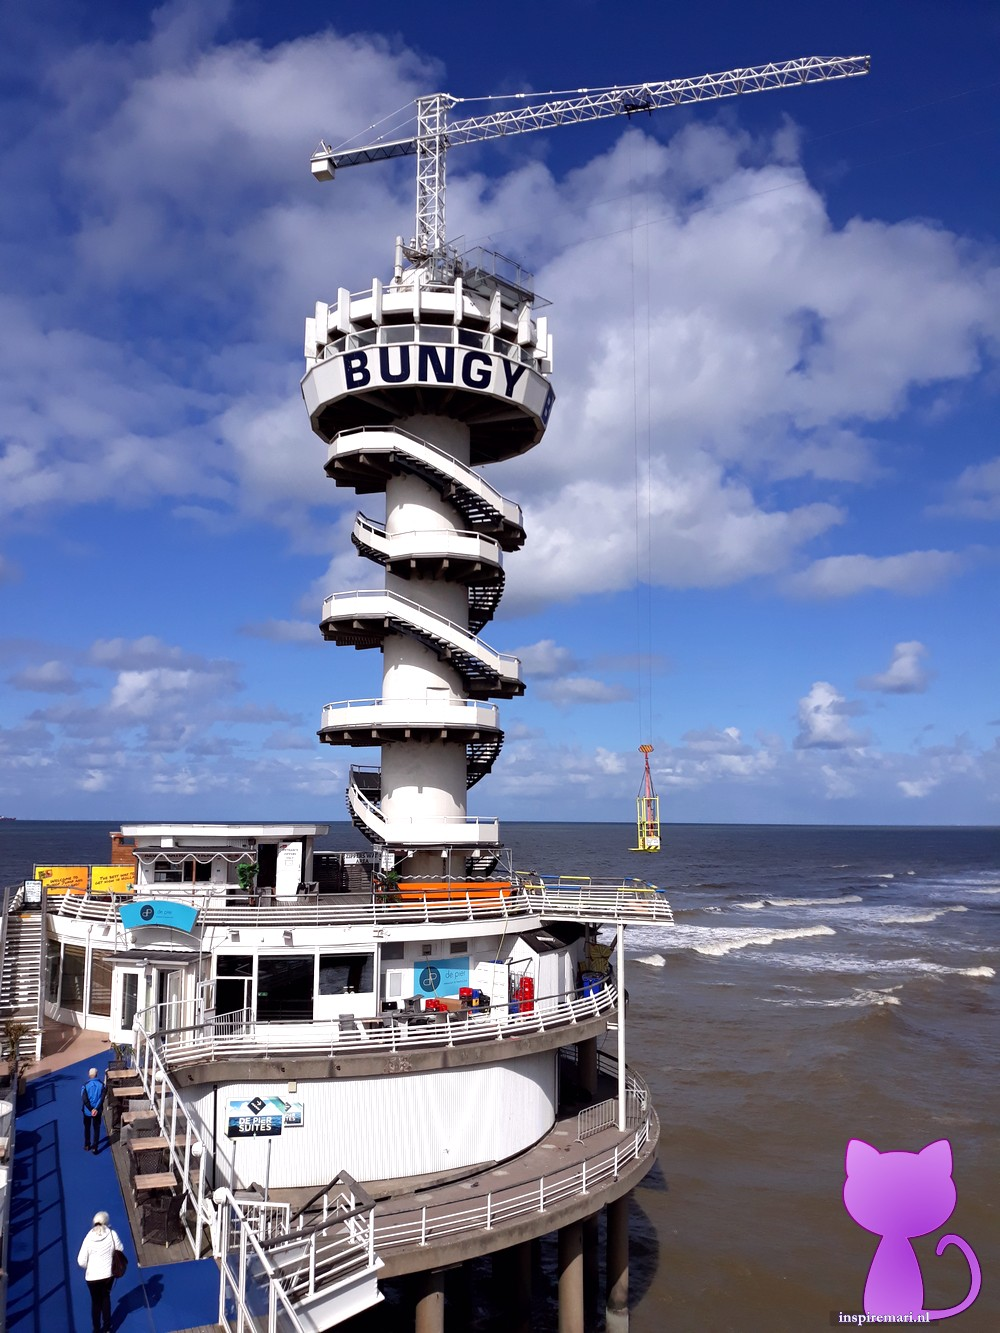 Bungee Jump Holland at Scheveningen the Netherlands